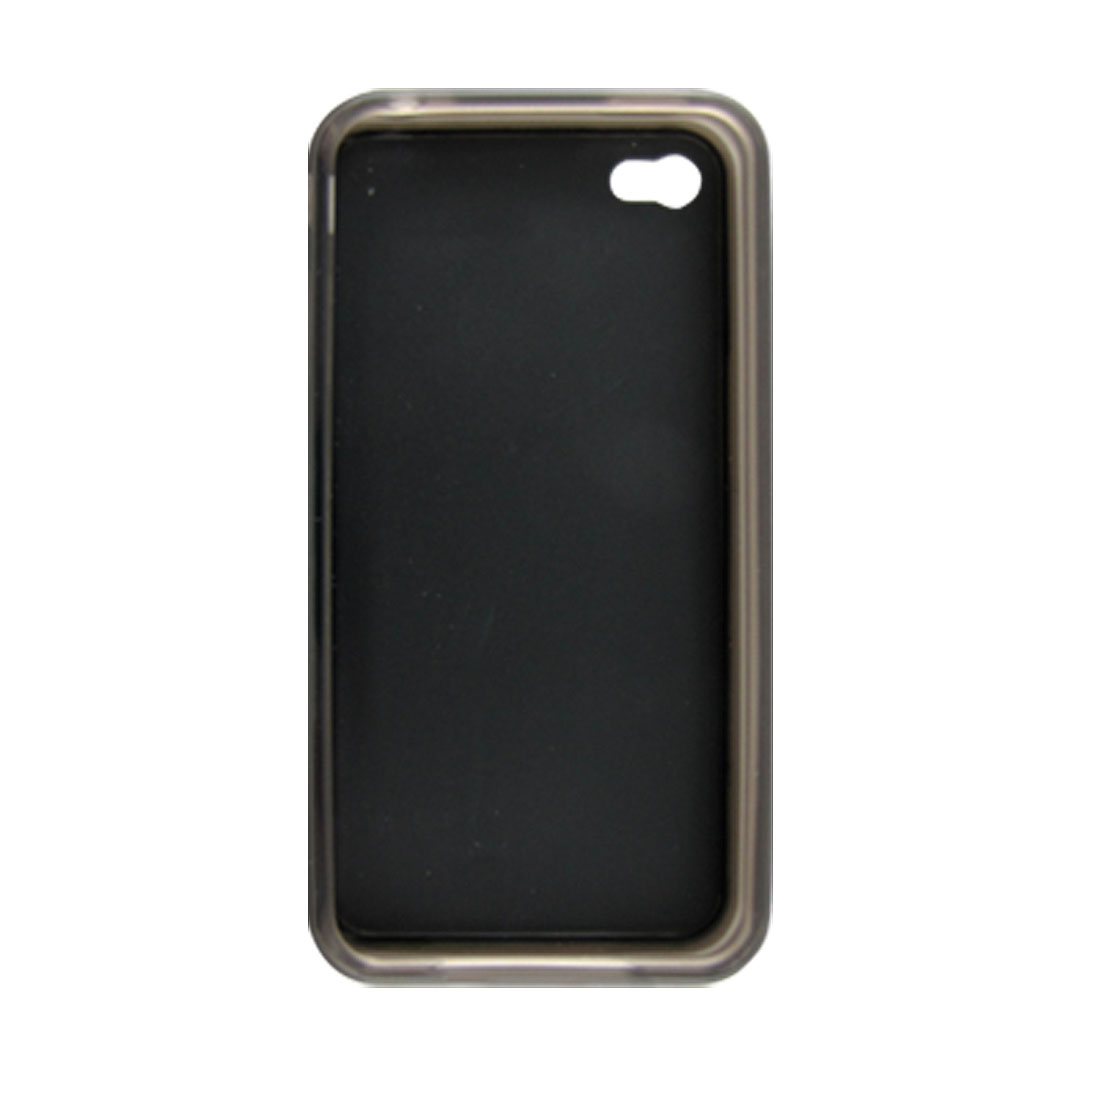 Hard Plastic Parrot 3D Look Back Shell for iPhone 4 4G